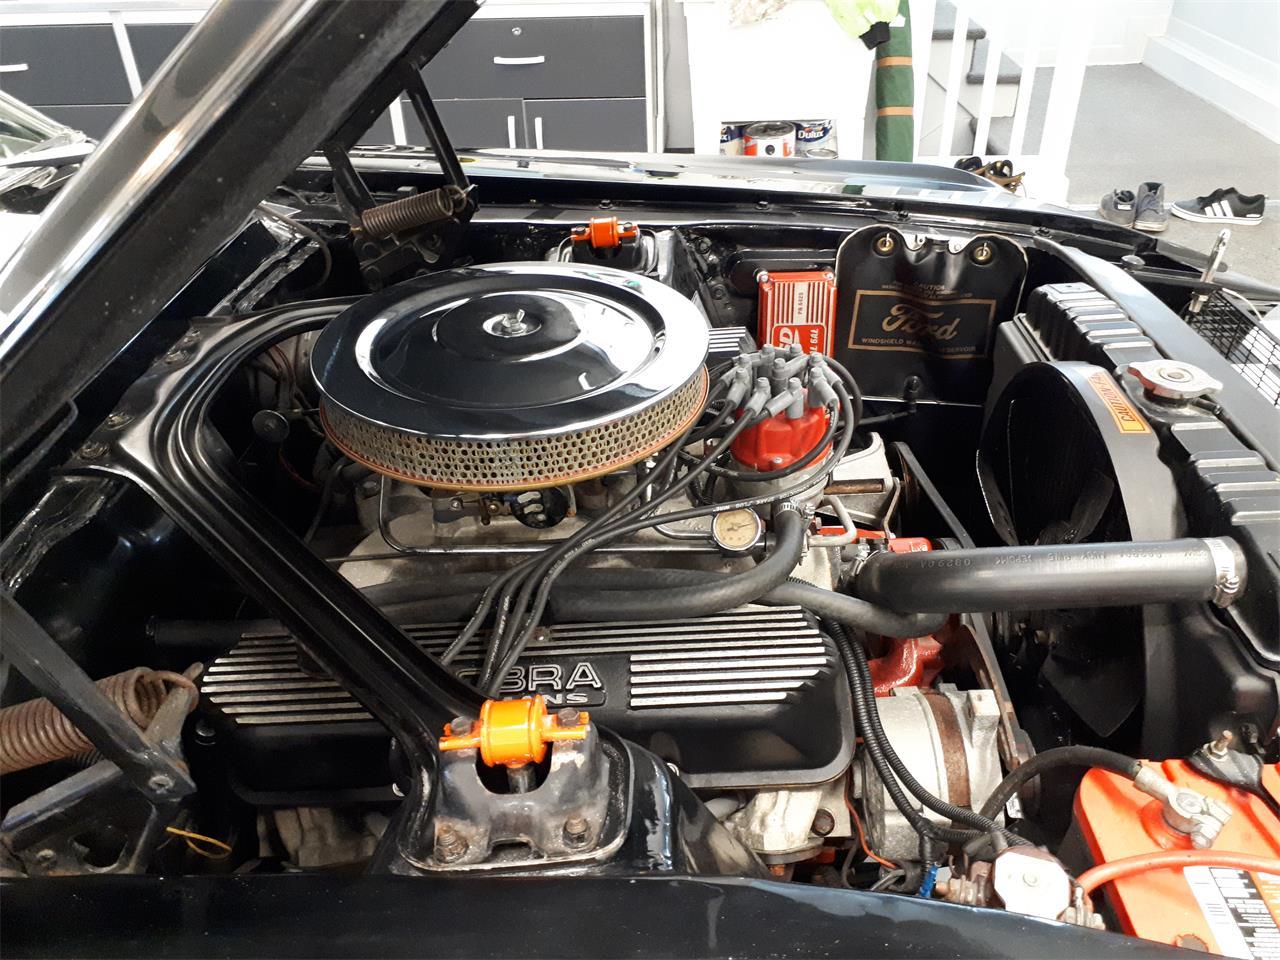 Large Picture of Classic '67 Ford Mustang located in Quebec - $57,000.00 Offered by a Private Seller - QH2P